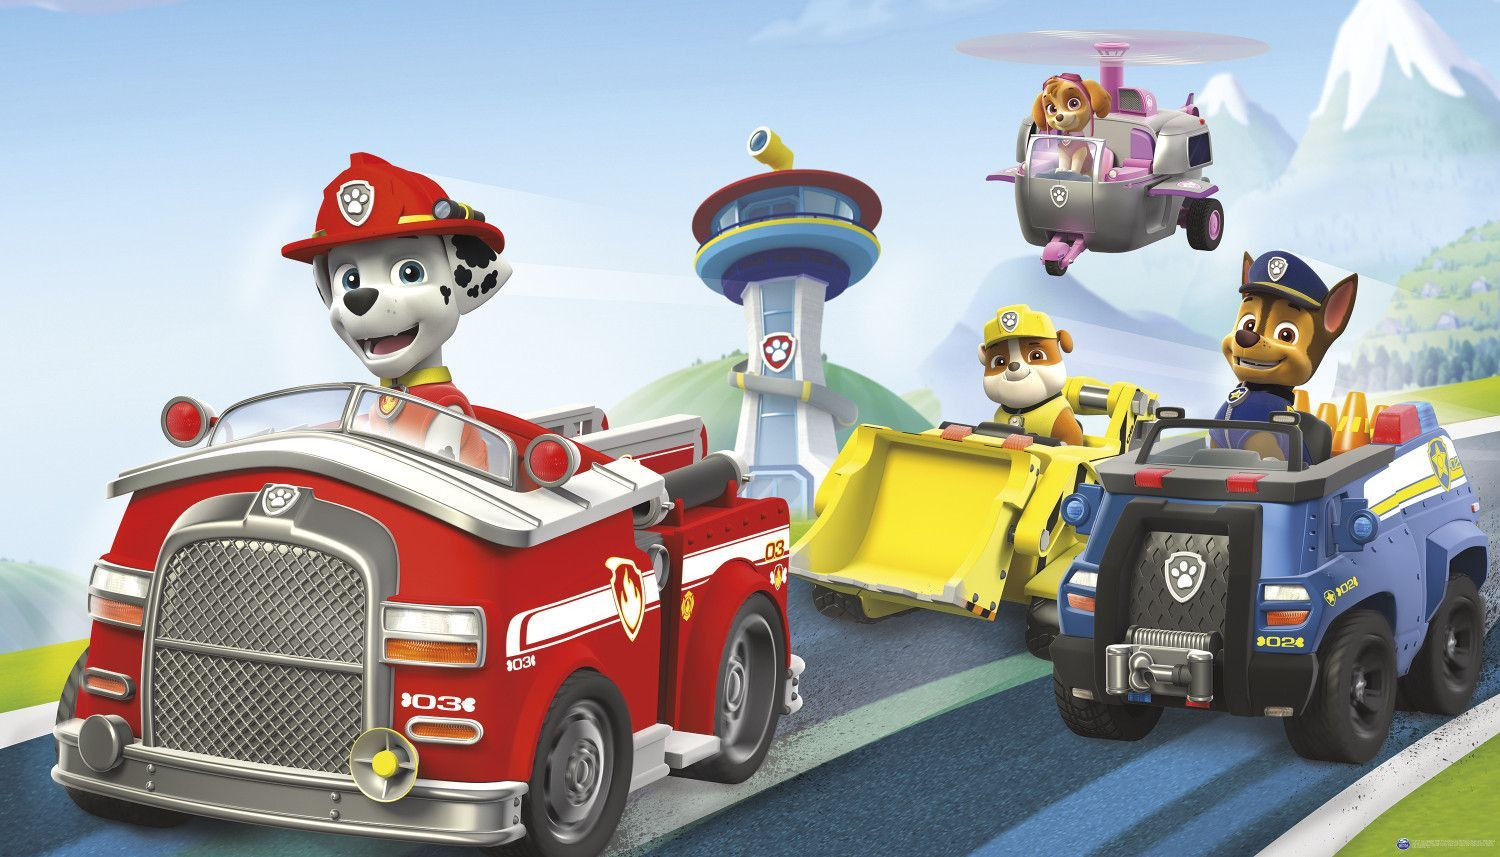 nickelodeon s paw patrol pups xl pre pasted surestrip wall mural nickelodeon s paw patrol pups xl pre pasted surestrip wall mural 10 5